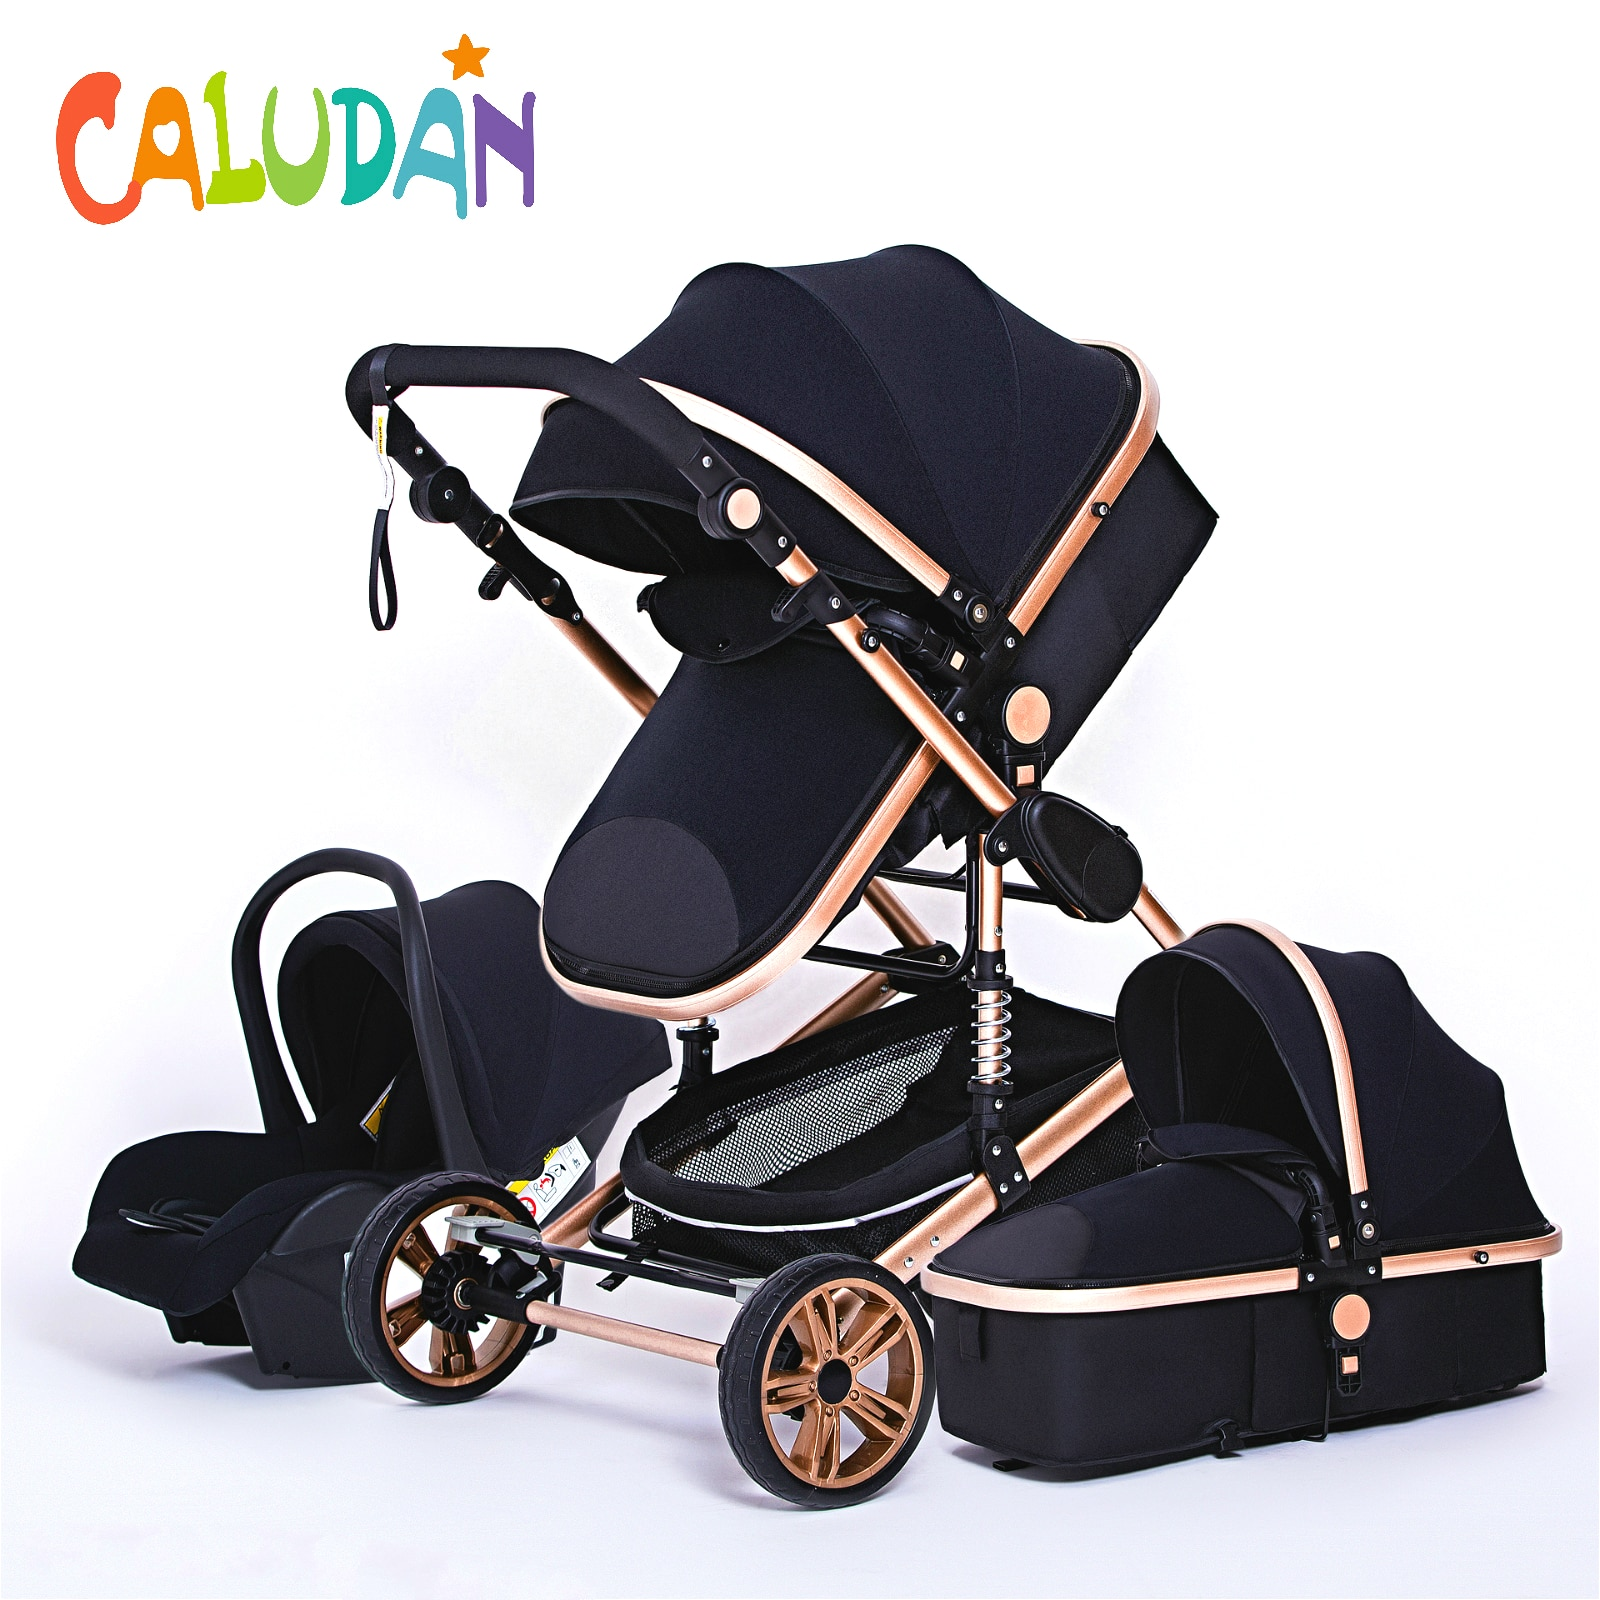 Luxurious Baby Stroller 3 in 1 Portable Travel Baby Carriage Folding Prams Aluminum Frame High Lands